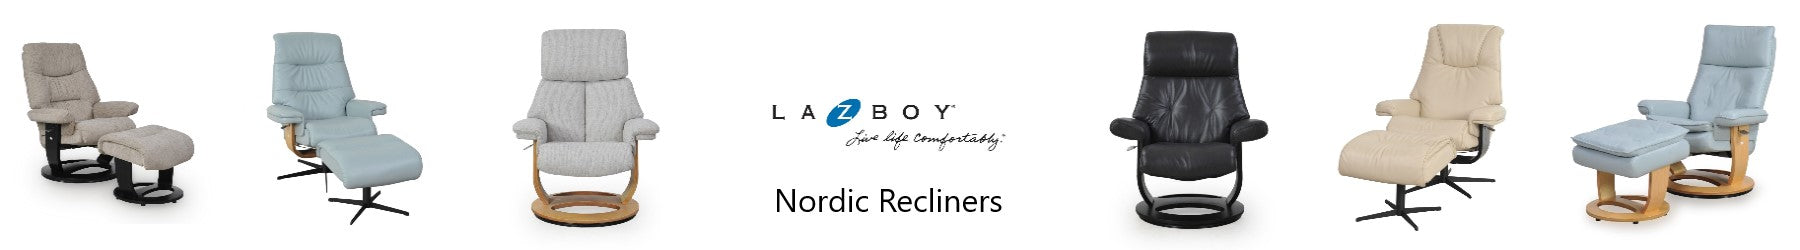 Lazy Boy Nordic Recliners